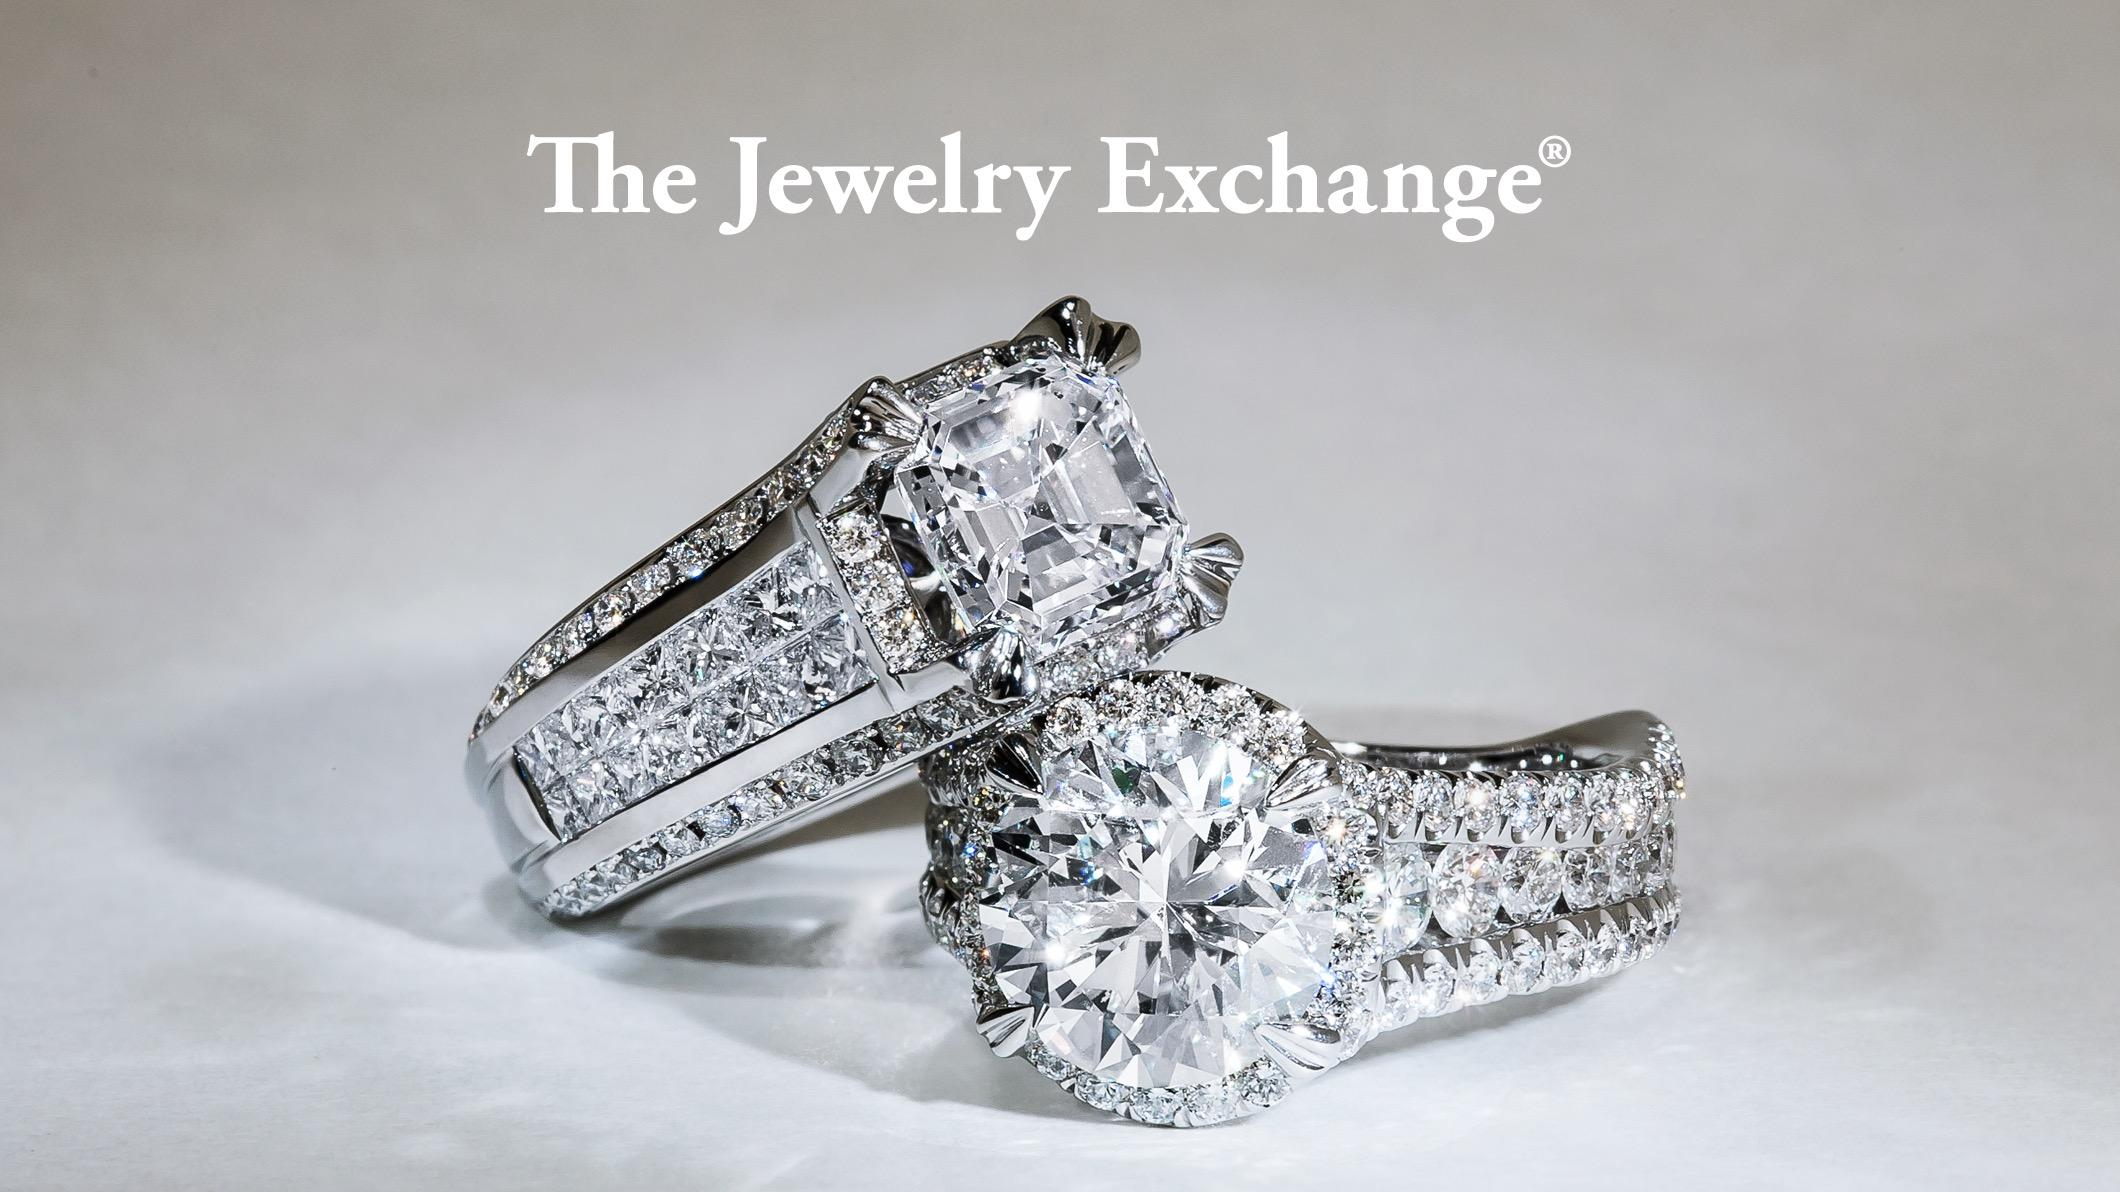 ... The Jewelry Exchange in New Jersey | Jewelry Store | Engagement Ring Specials image 2 ...